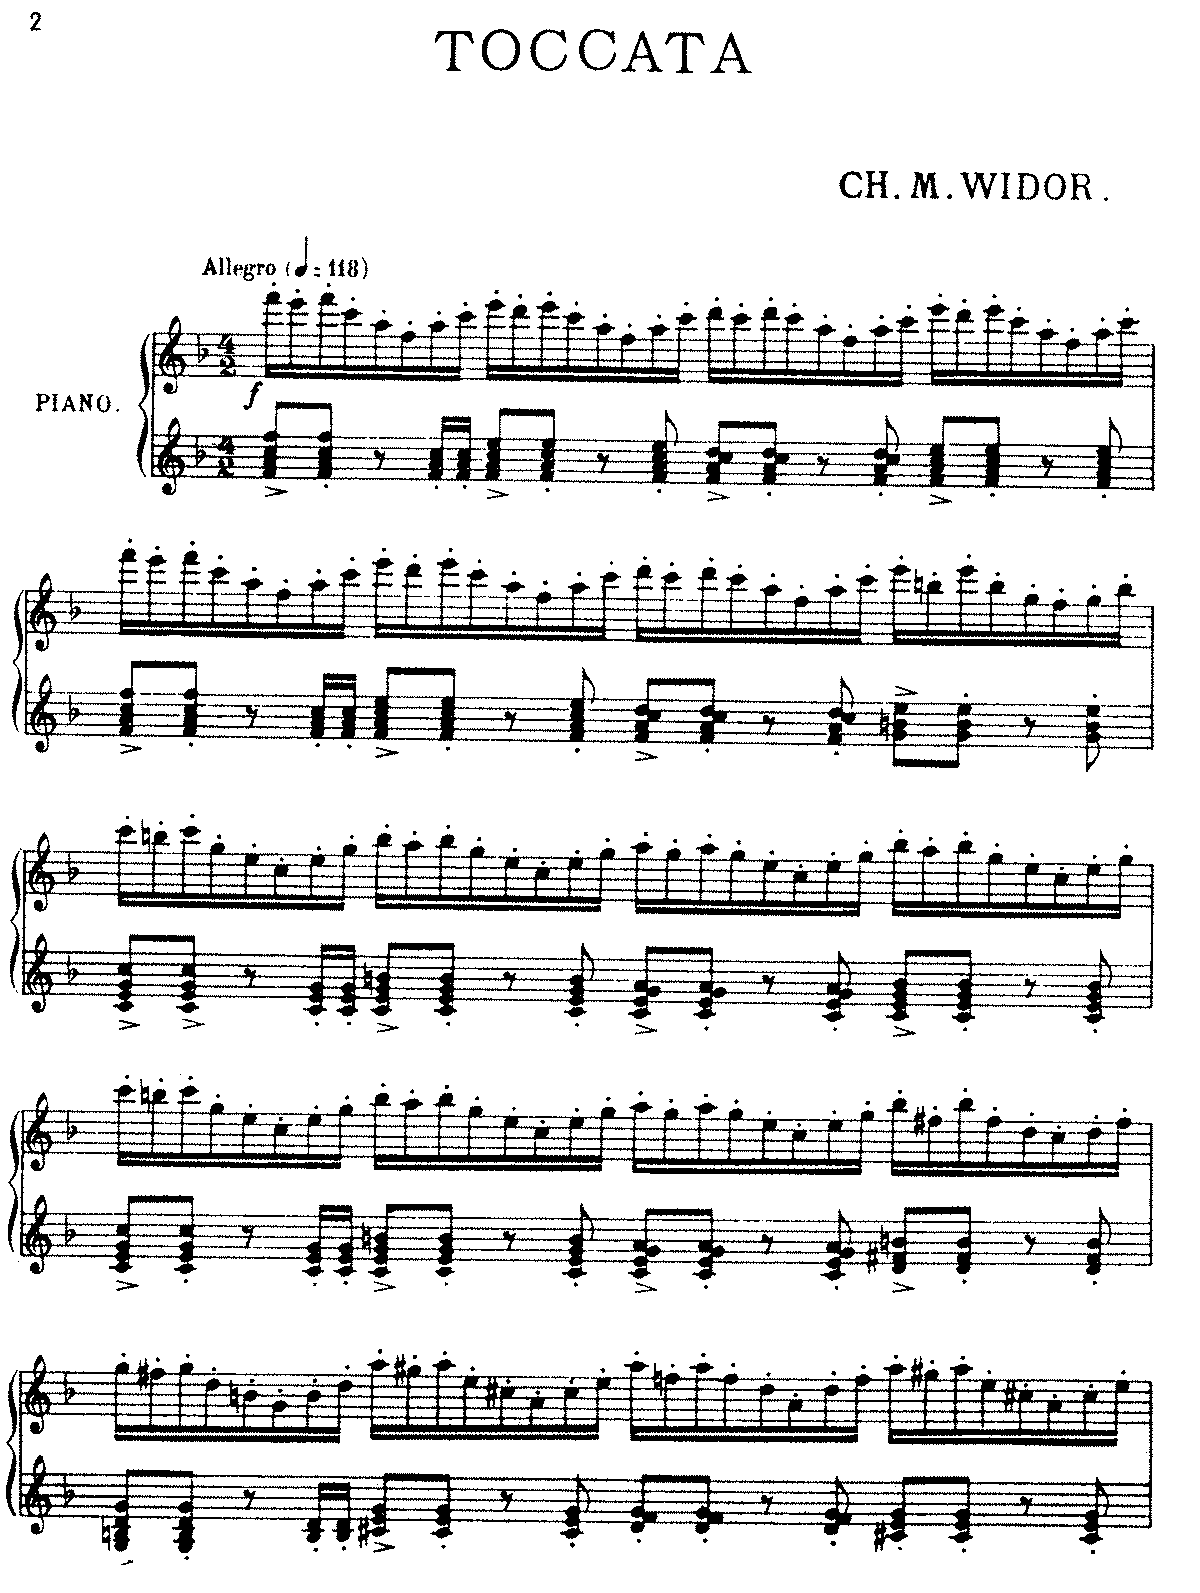 Widor Toccata (piano version) (alt).pdf